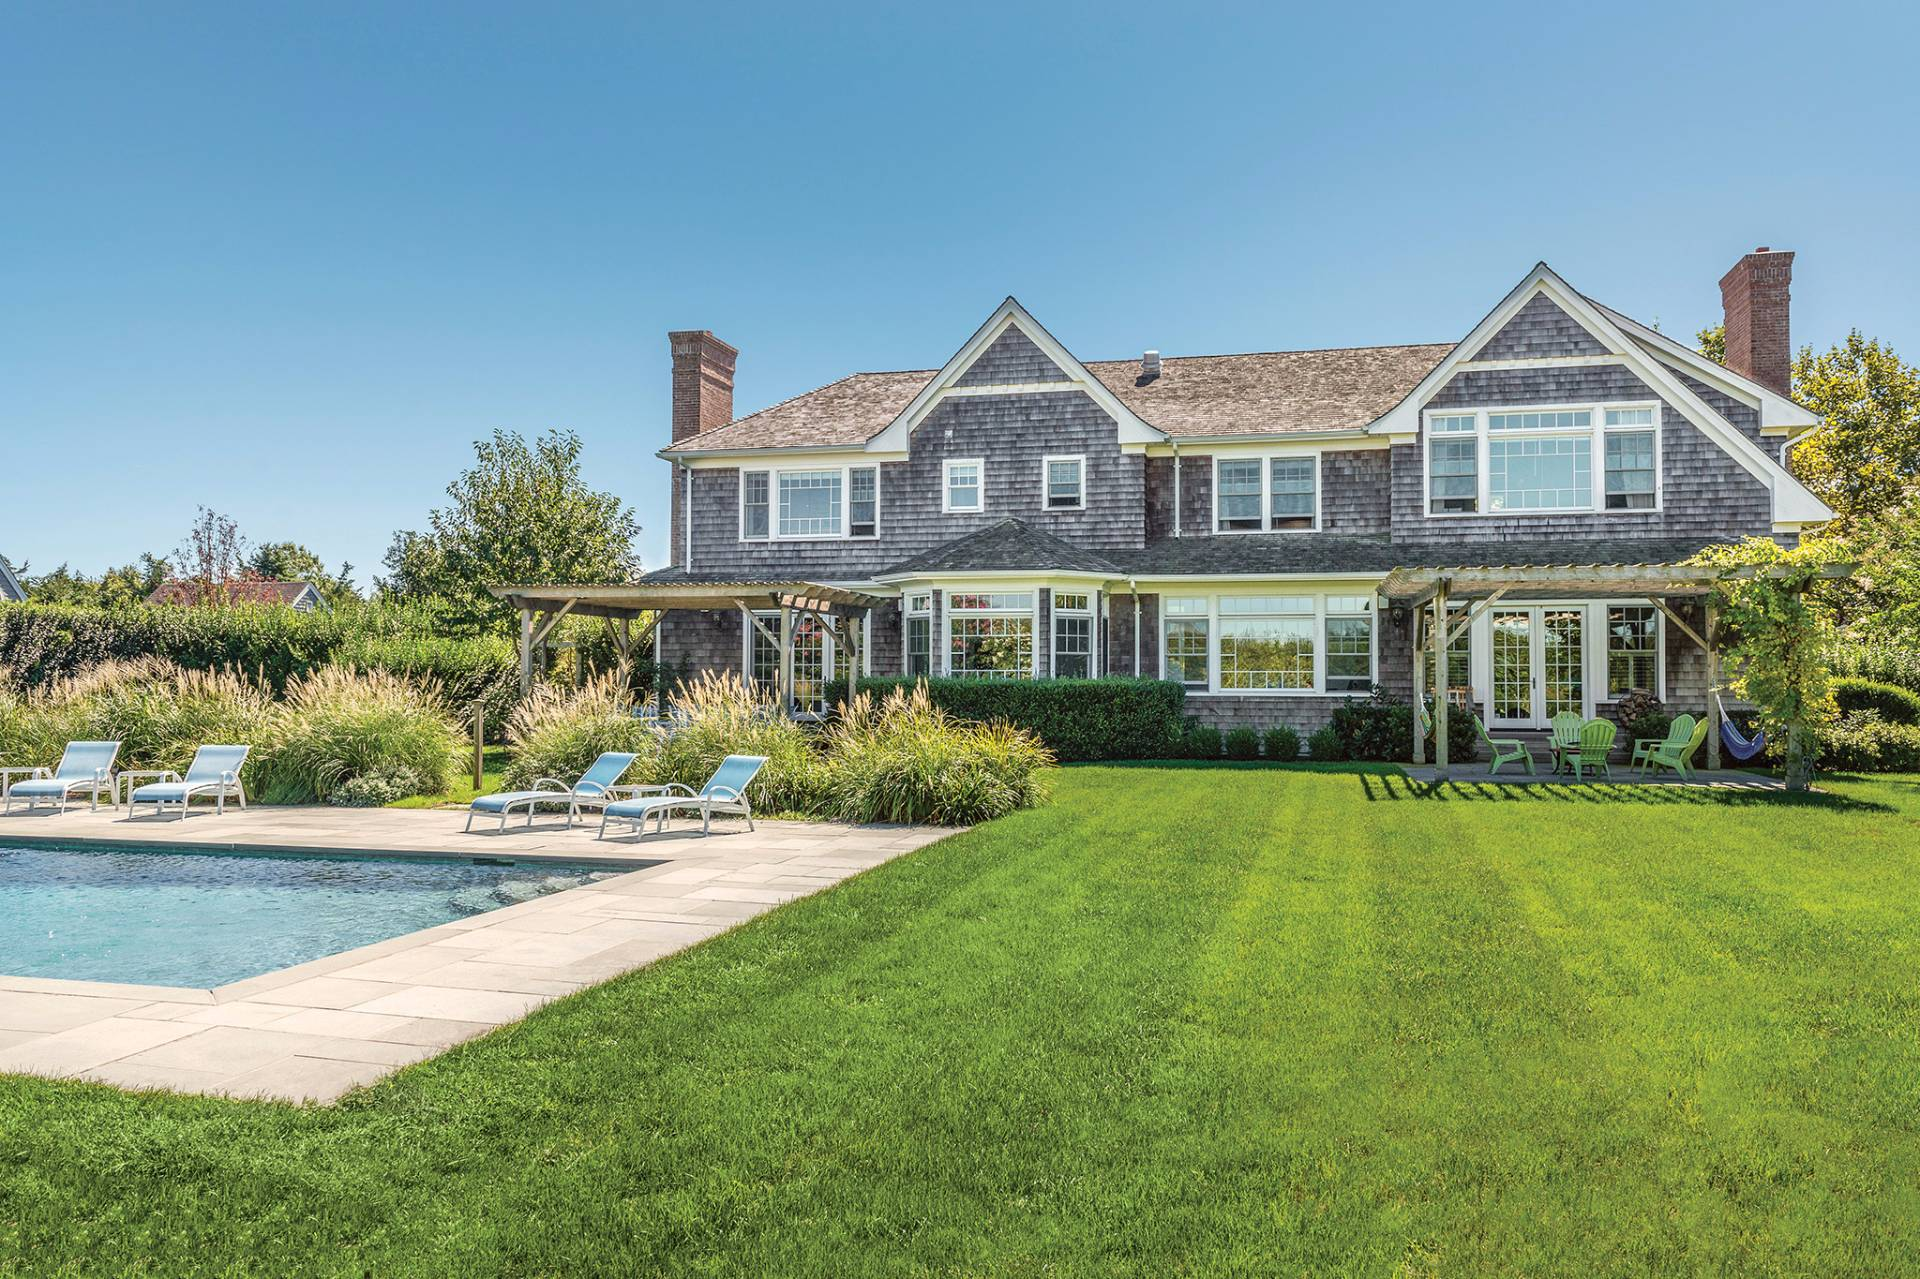 Single Family Home for Sale at Classic Sagaponack With Tennis 34 Herb Court, Sagaponack, New York